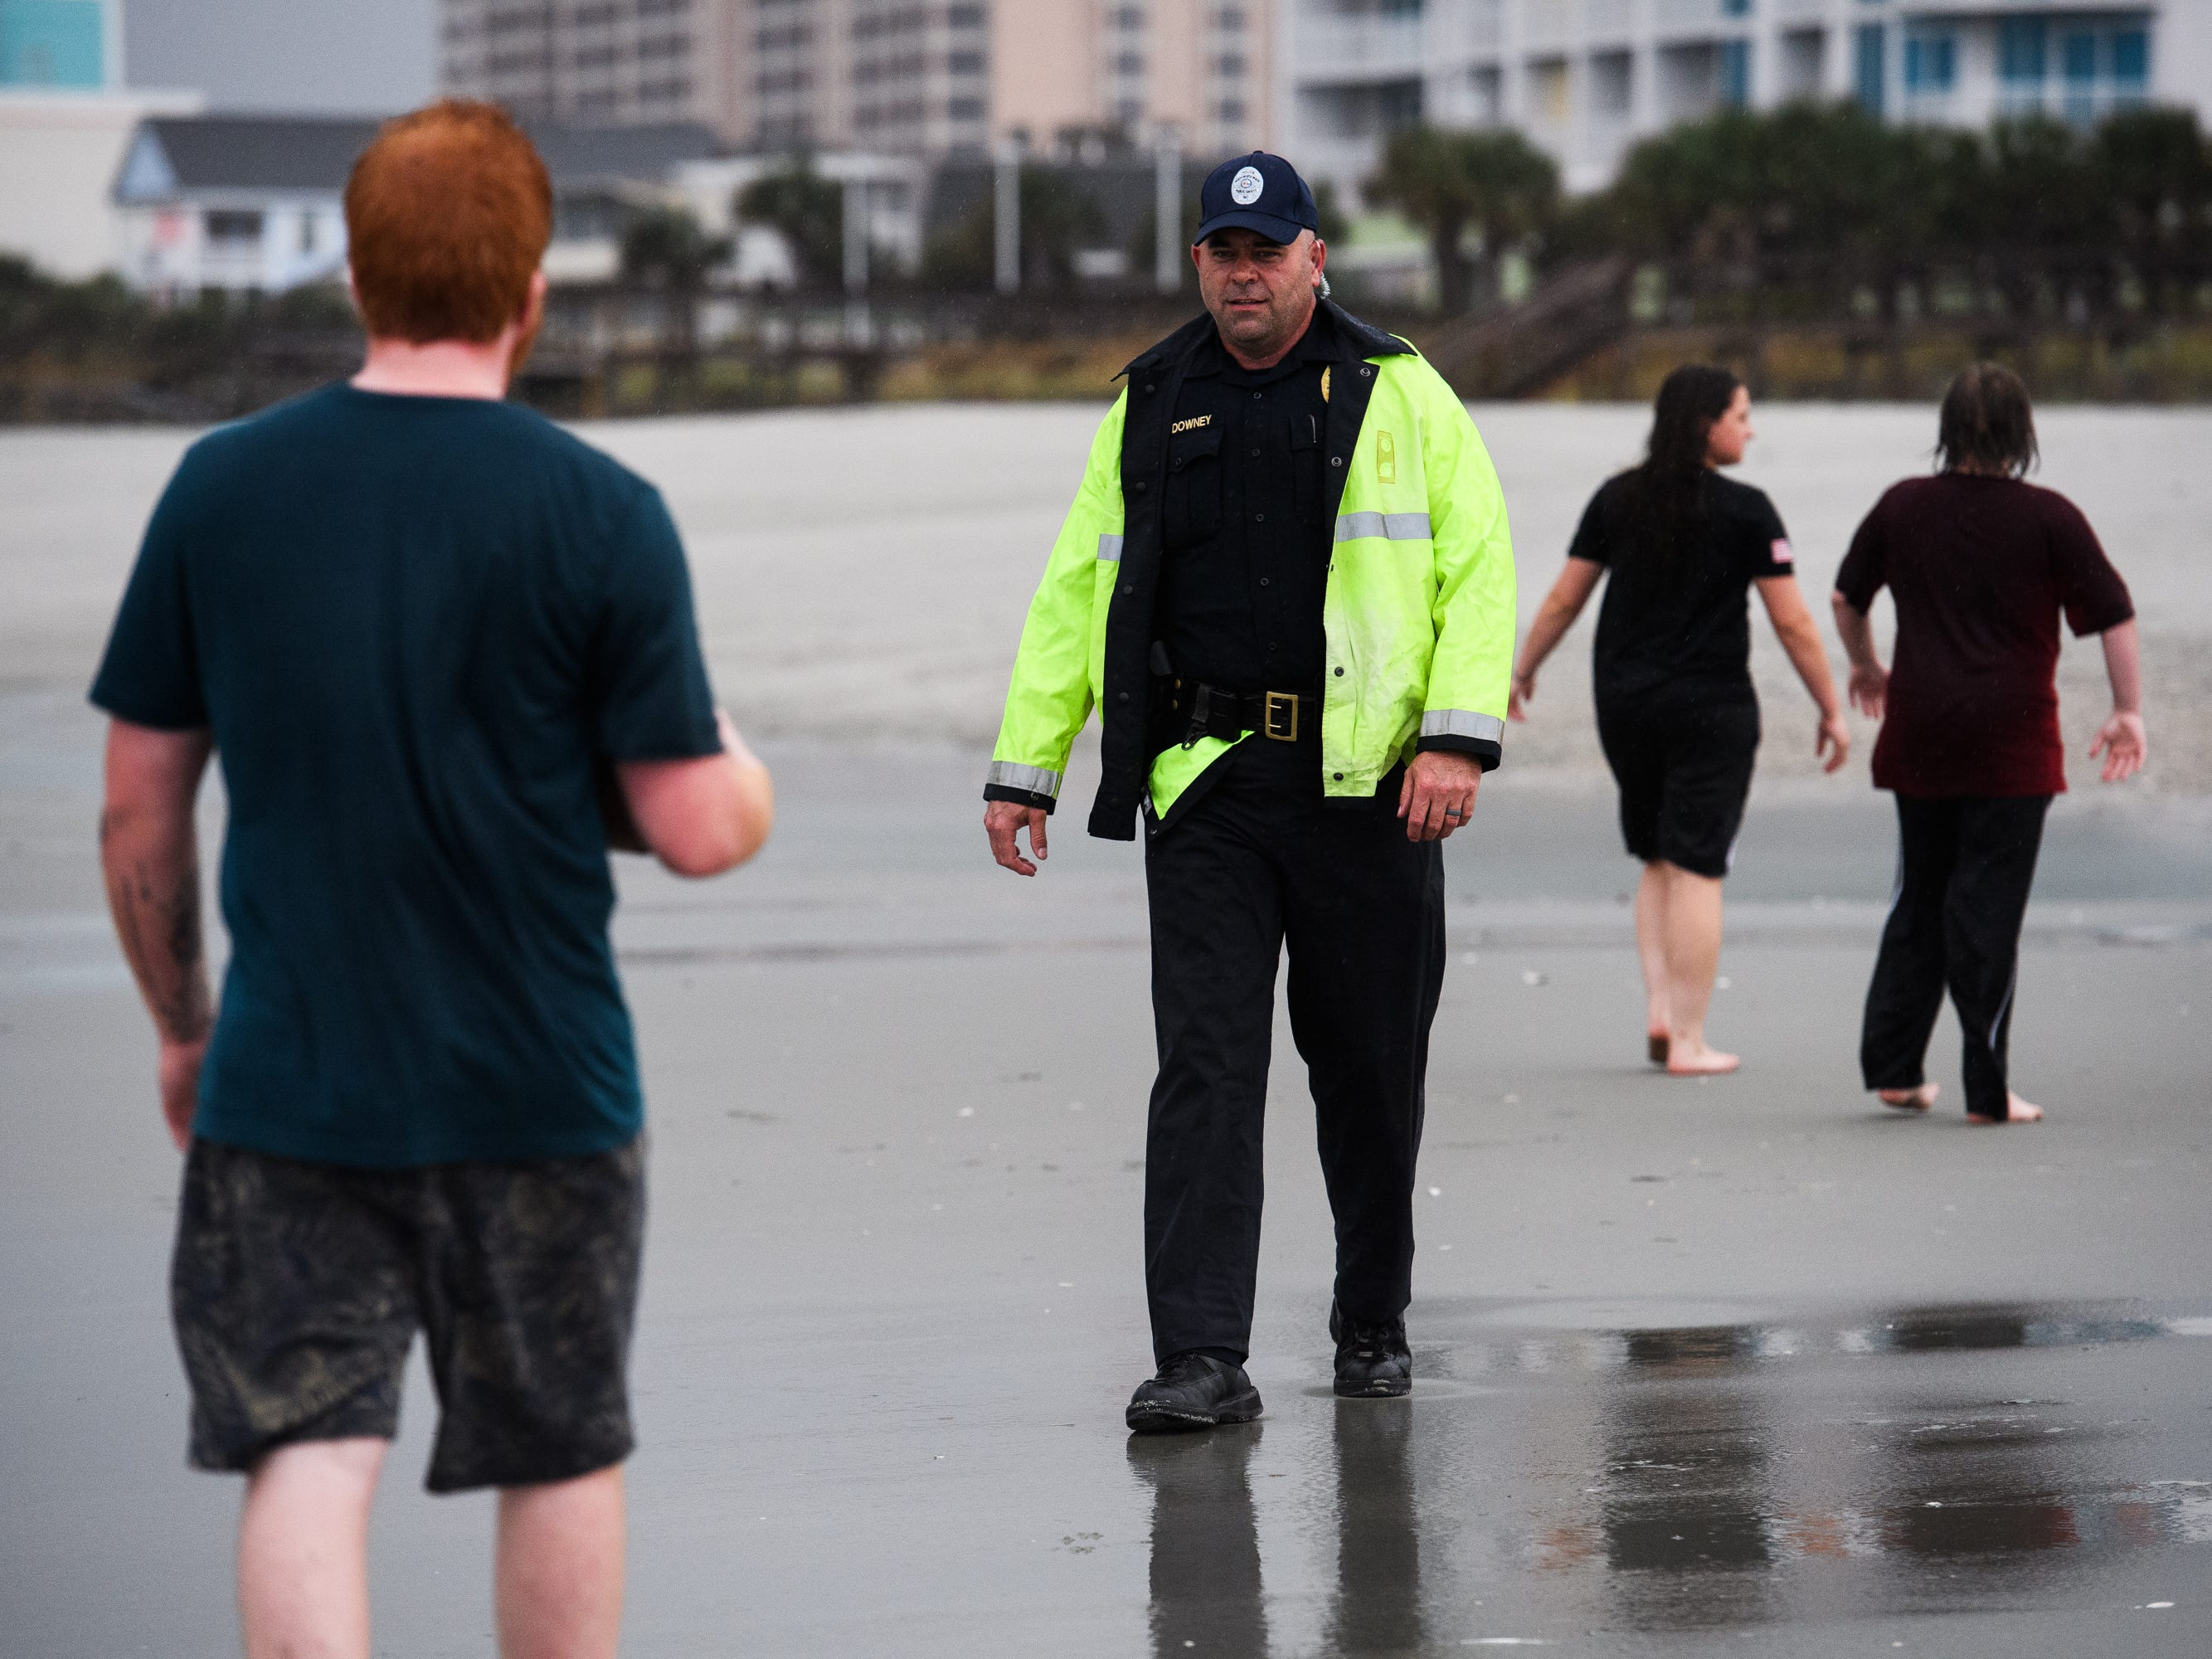 A North Myrtle Beach public safety officer informs beachgoers of the 7 p.m. curfew due to Hurricane Florence on Thursday, Sept. 13, 2018.